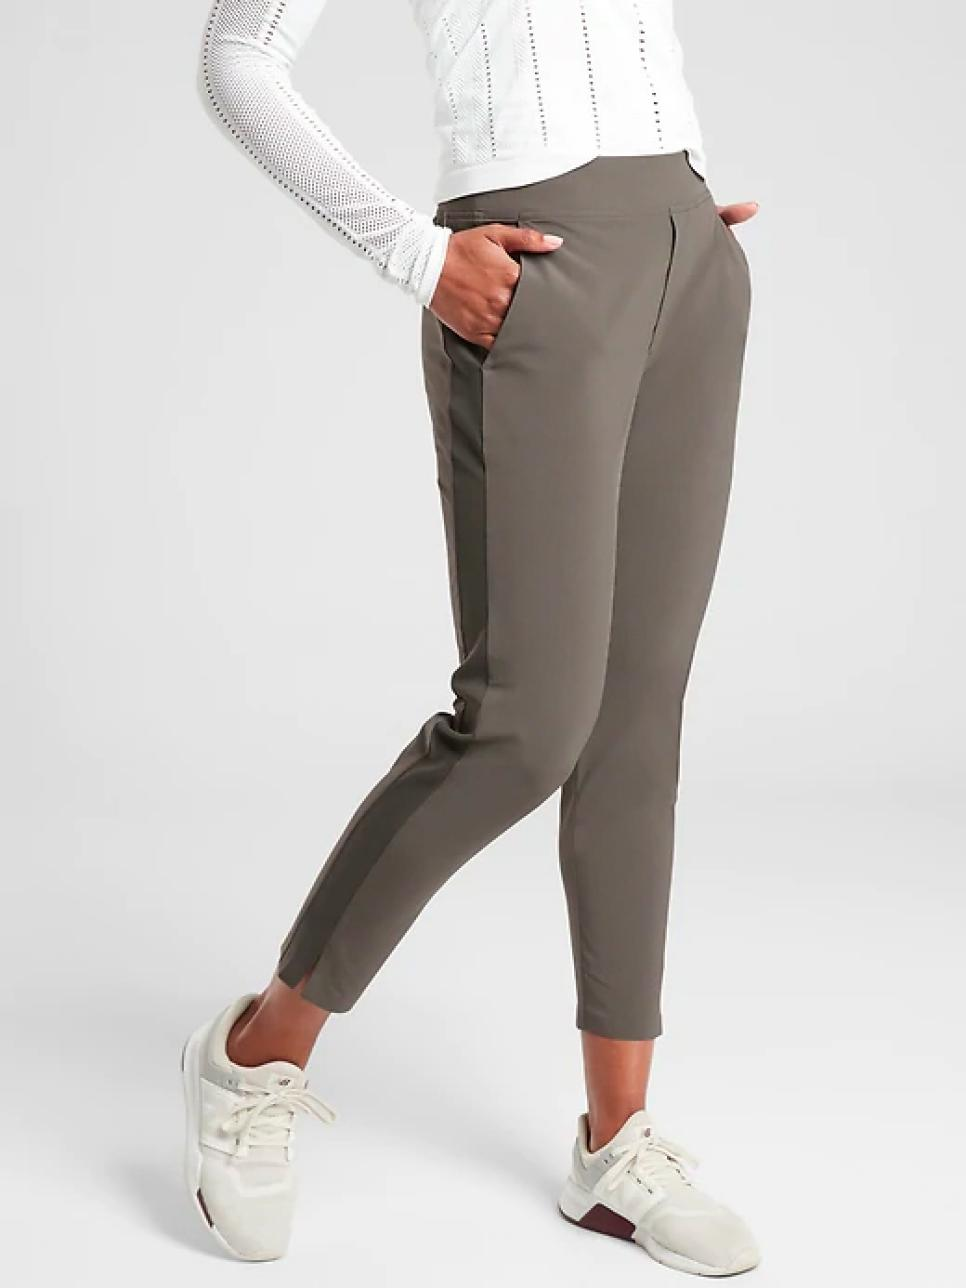 Athleta Womens Golf Pants CK.jpg